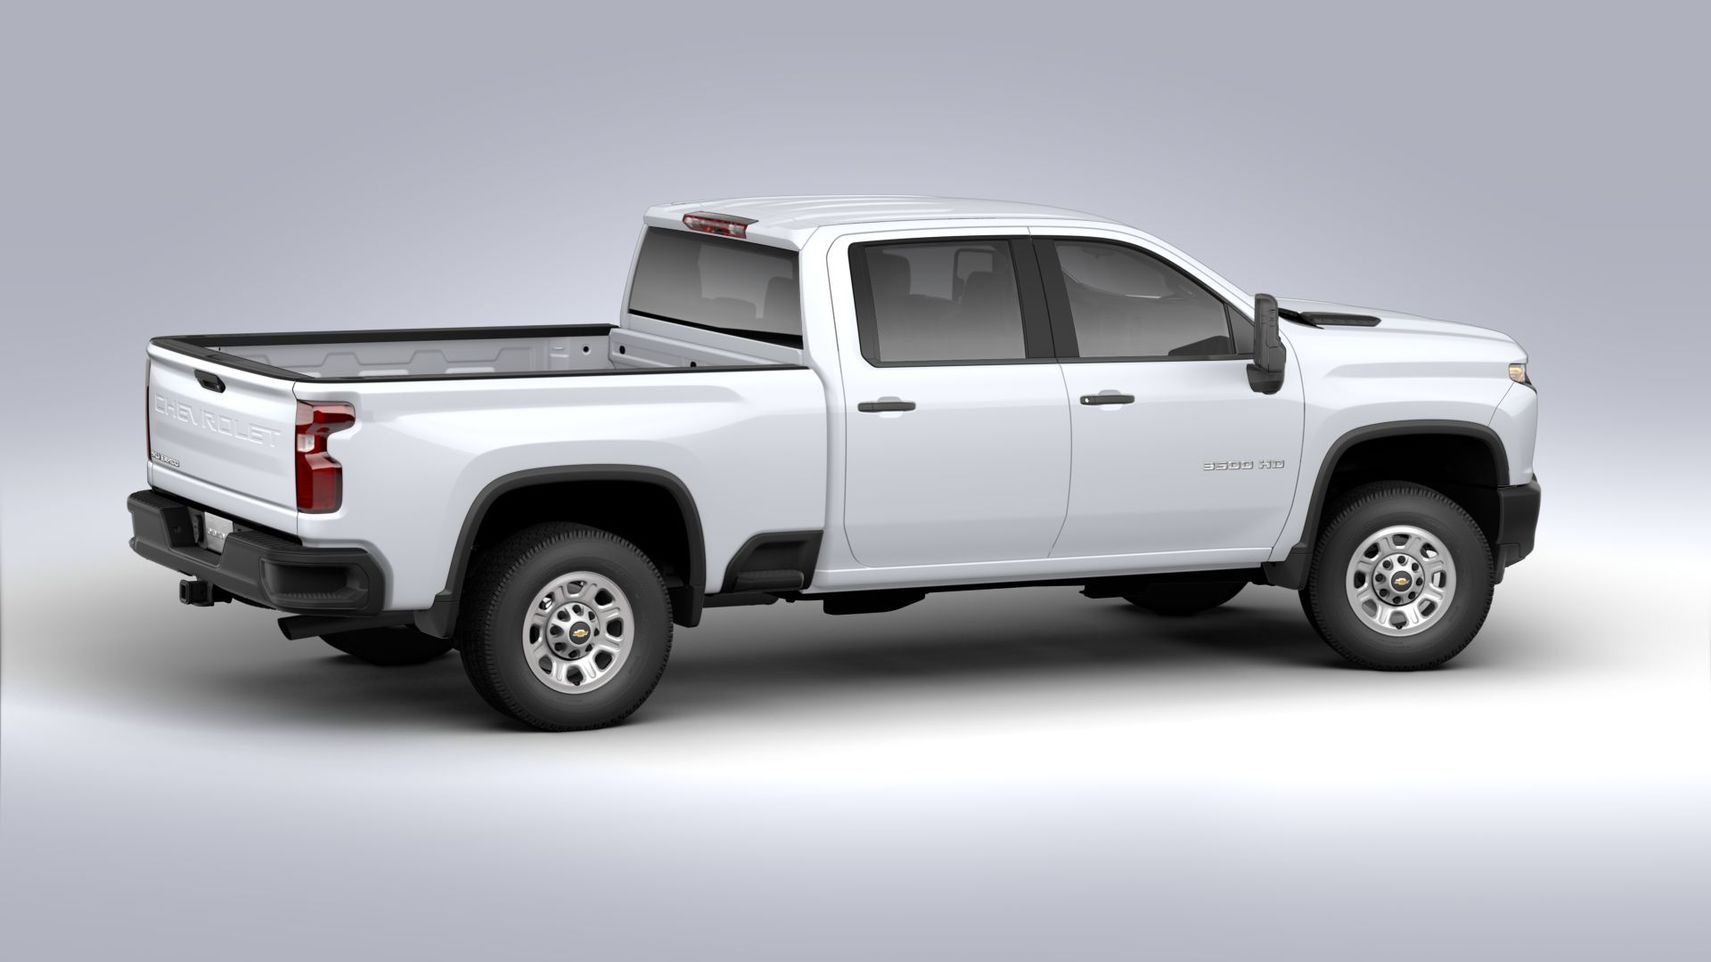 General Motors President Mark Reuss has announced an all-electric variant of the Chevrolet Silverado. The company plans to design it from the ground up, rather than electrifying the existing version.